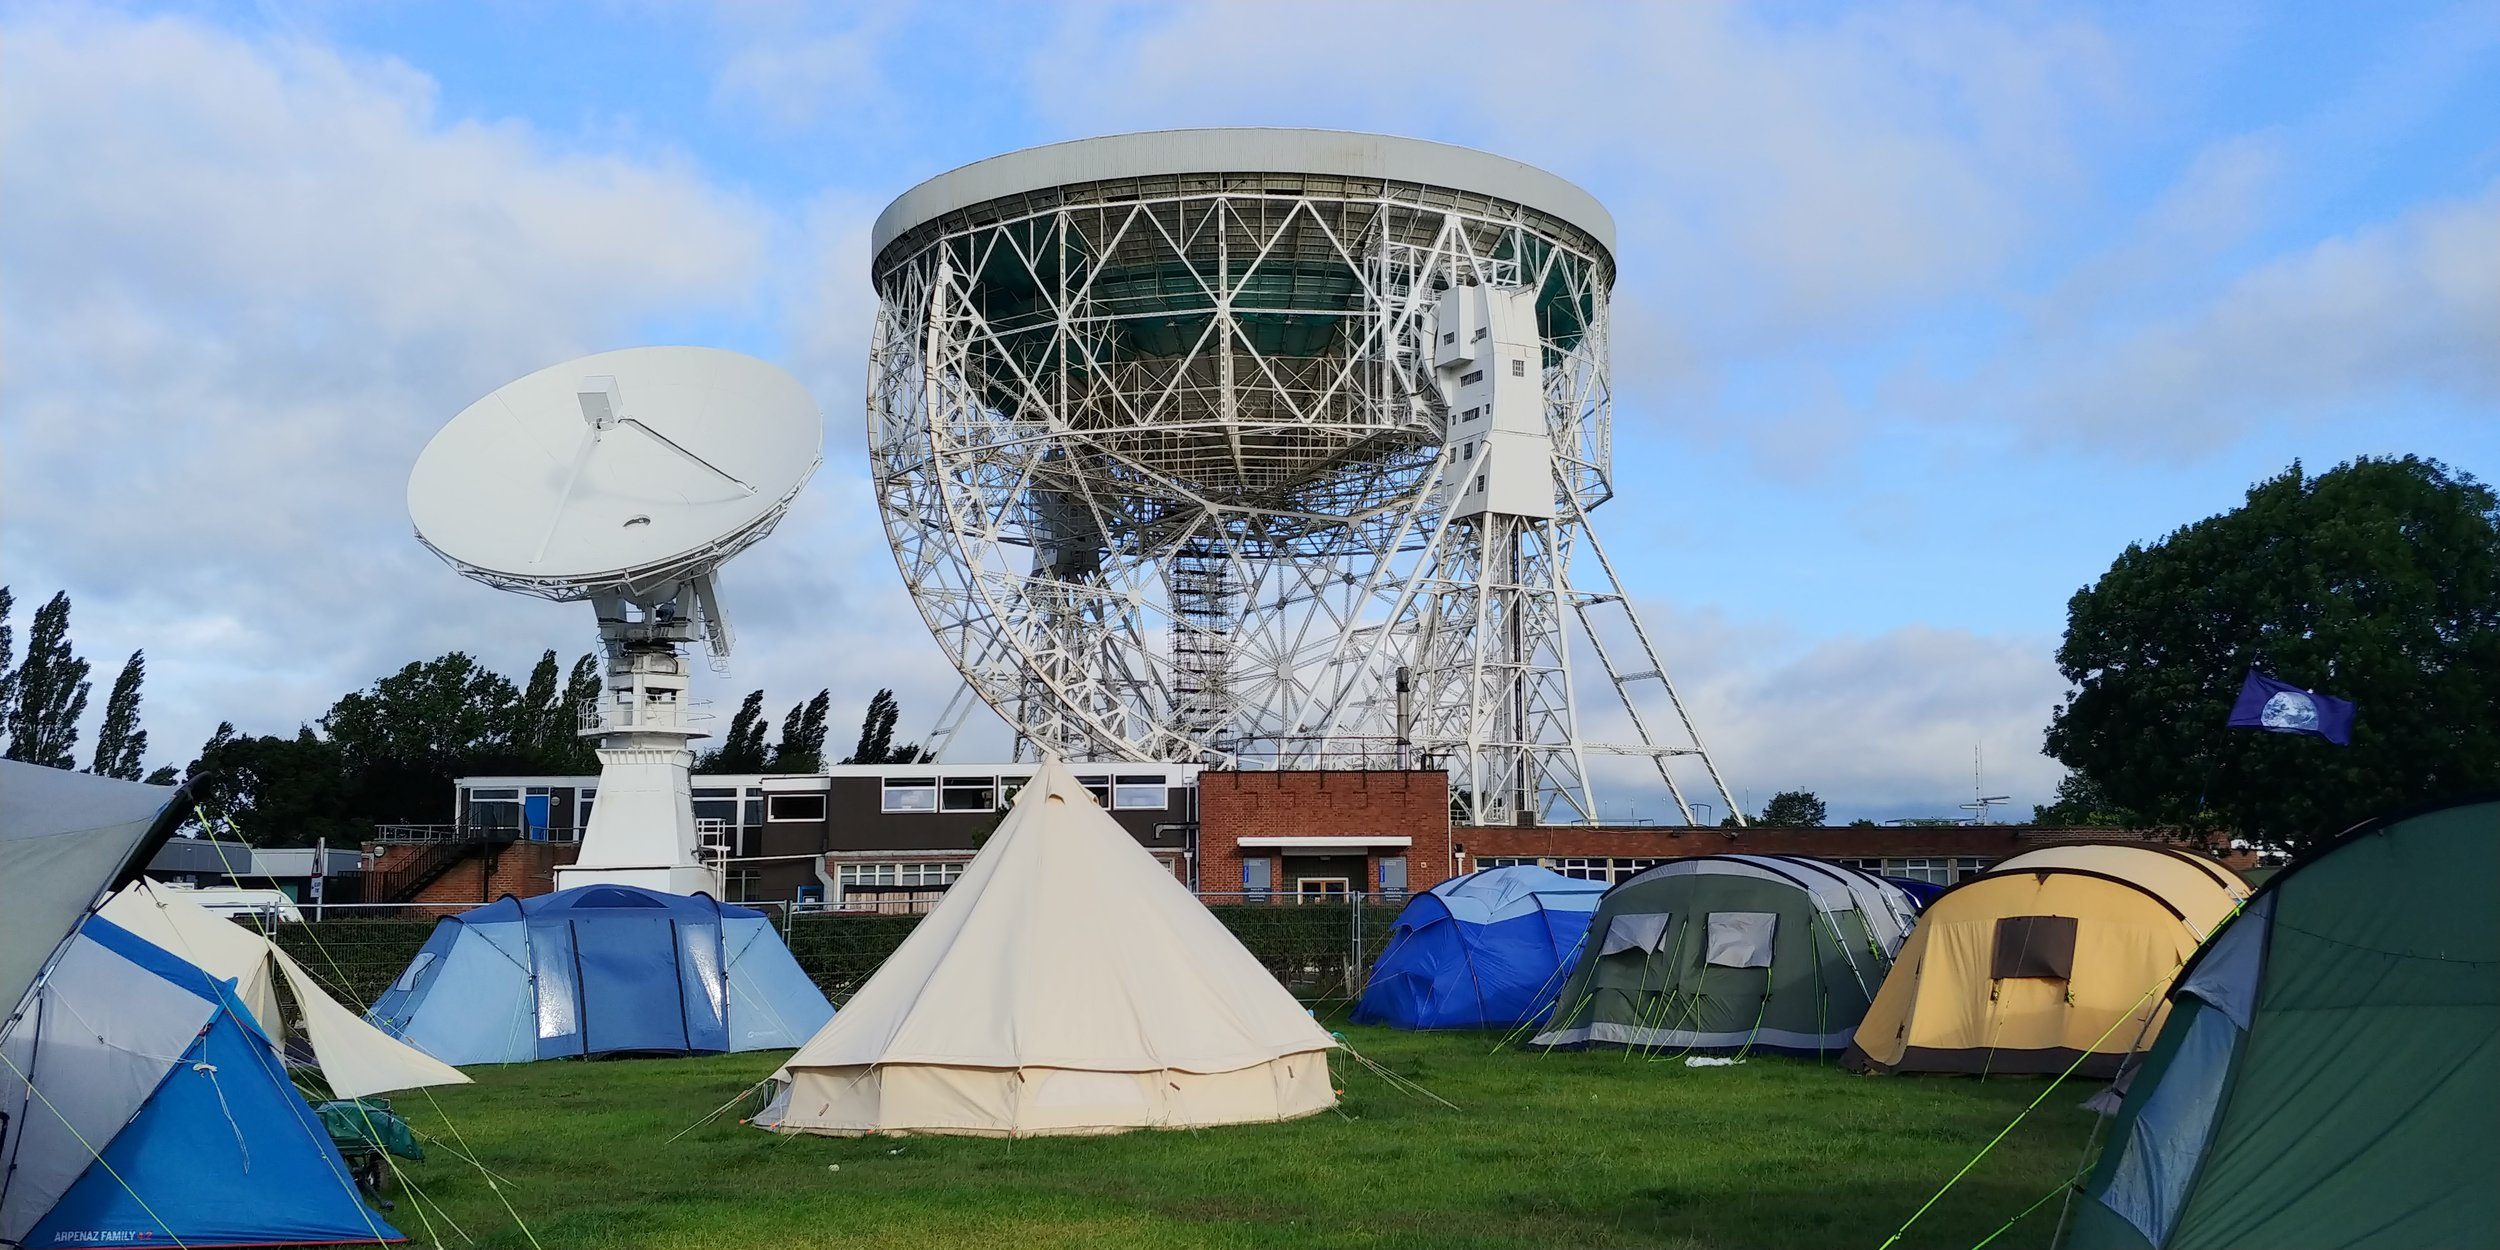 Camping under the Lovell telescope.